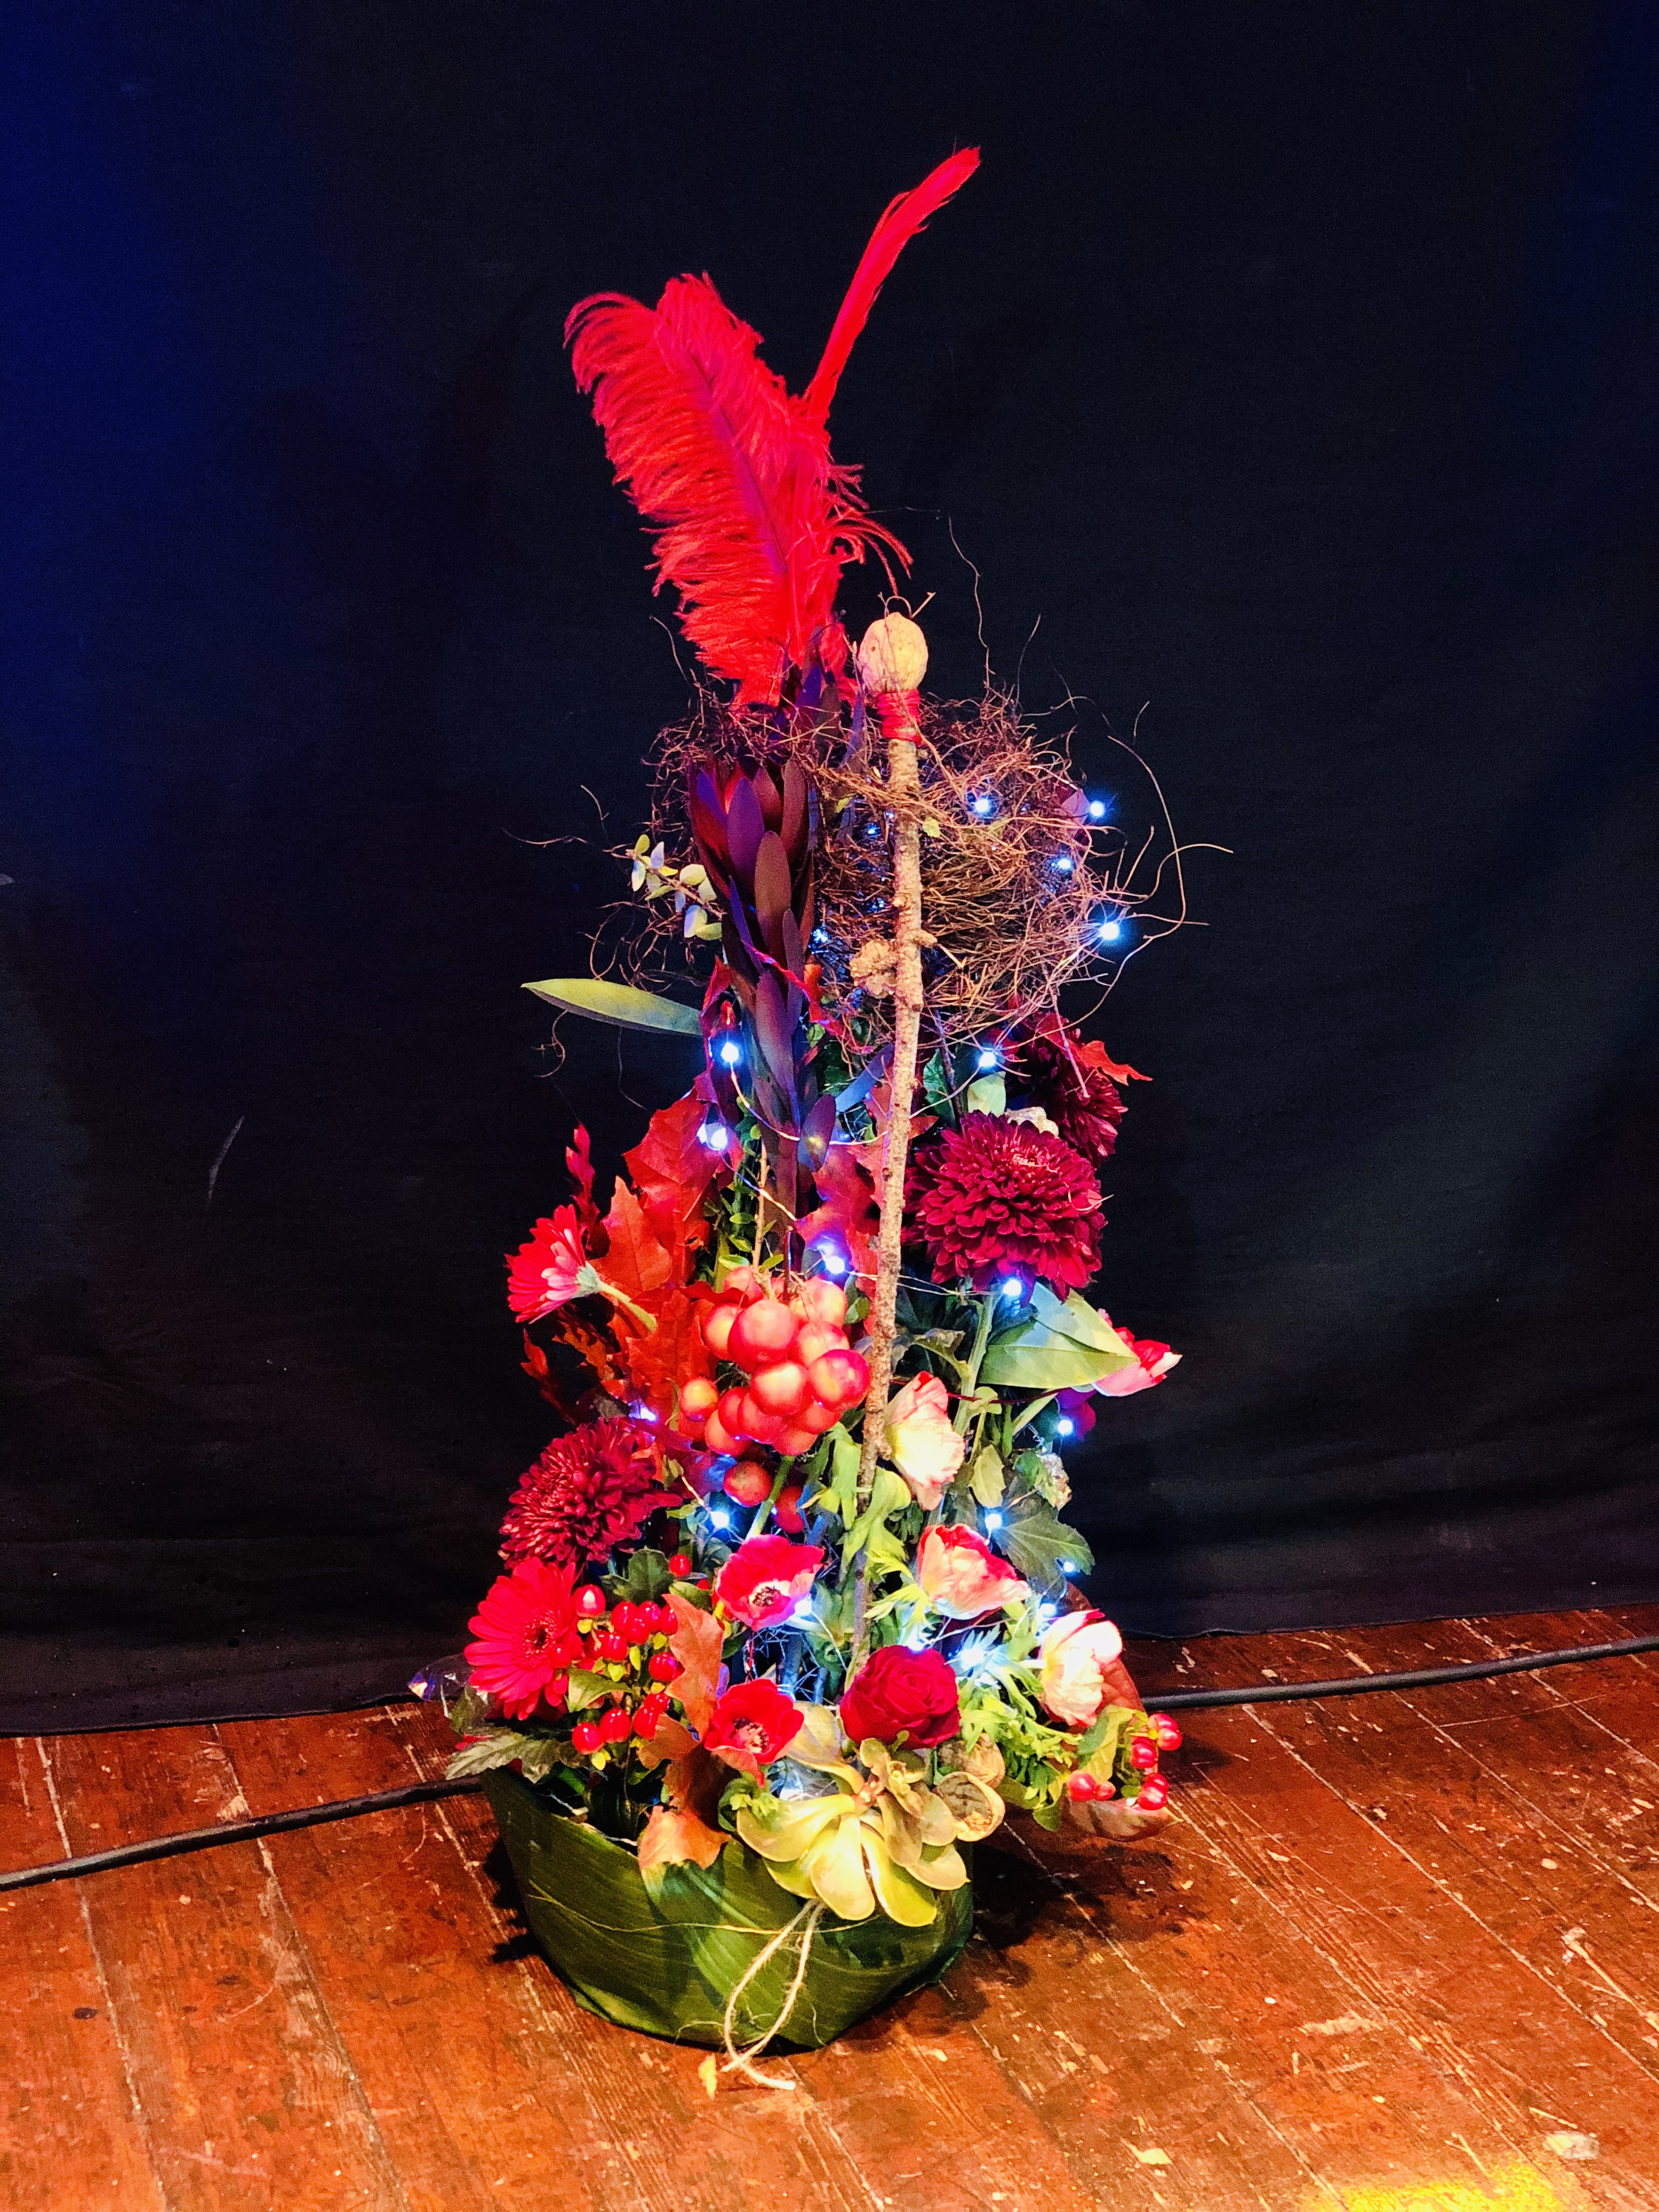 The Nutcracker Arrangement won in our Charity Raffle